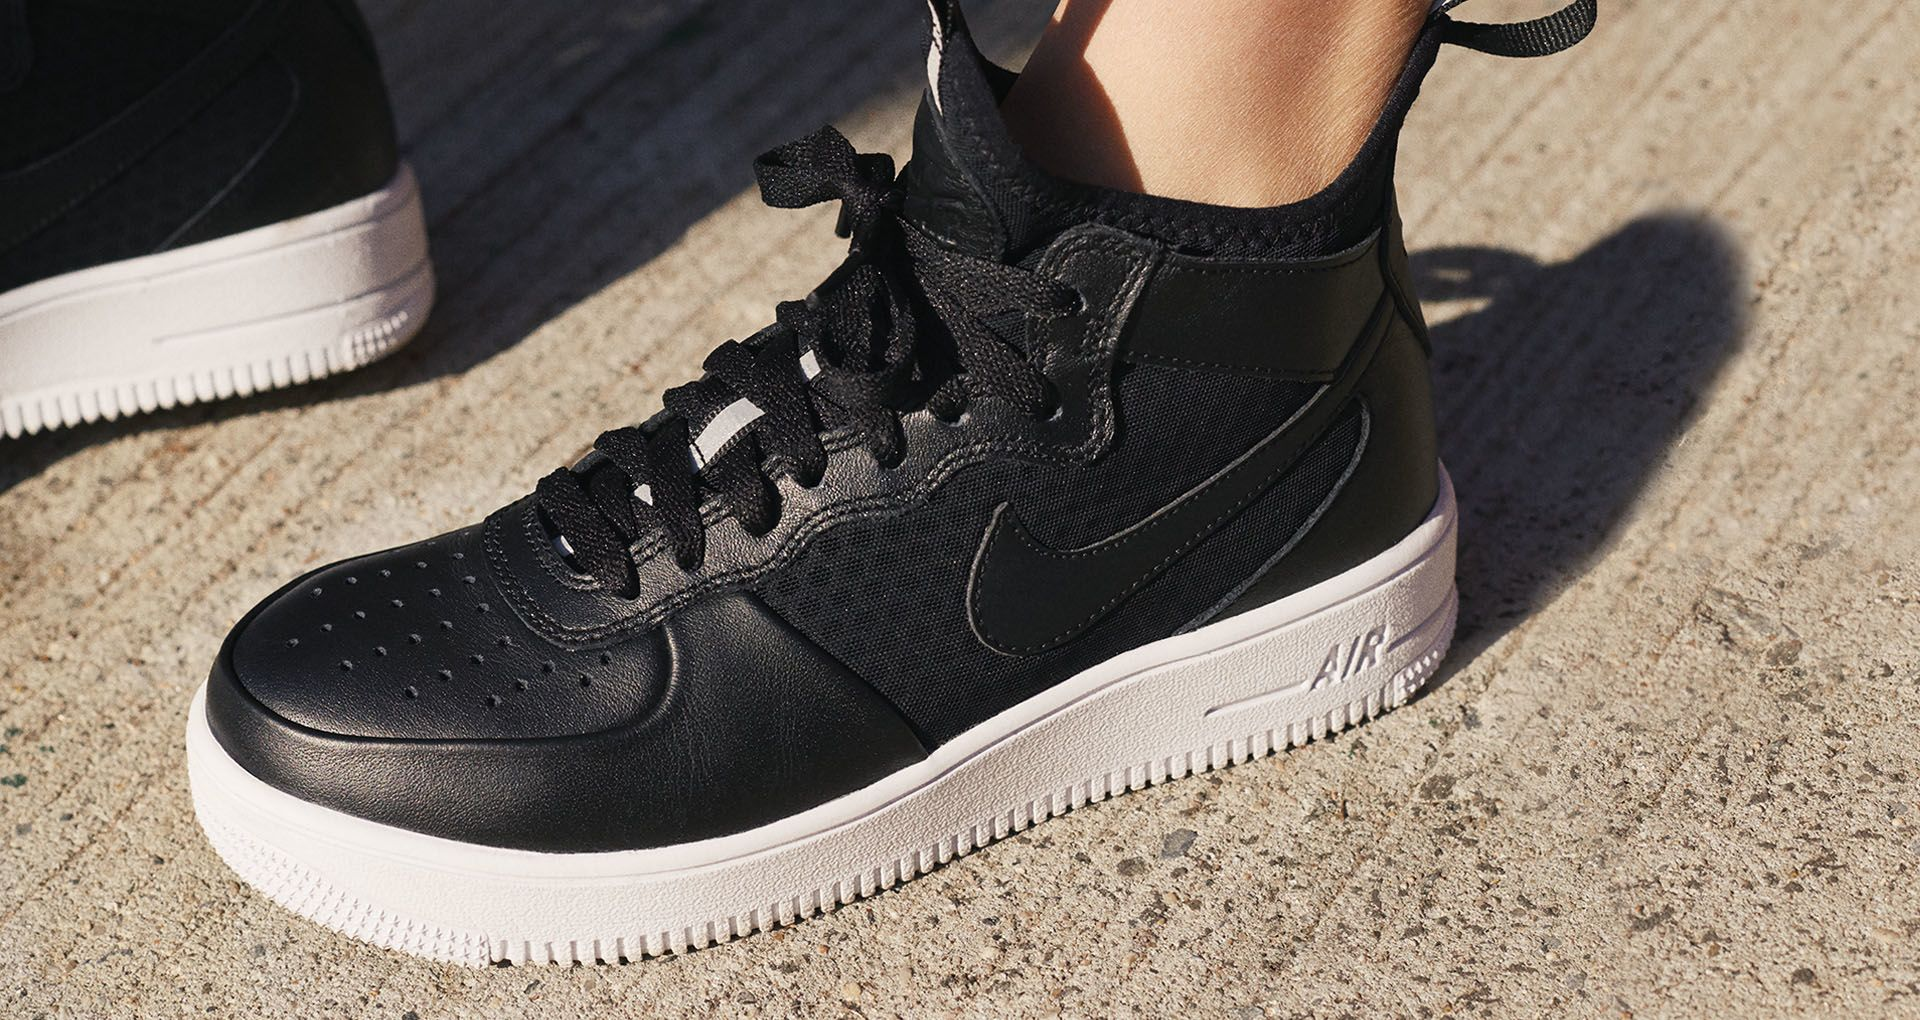 d84292e7d Women's Nike Air Force 1 Ultraforce Mid 'Black & White'. Nike⁠+ SNKRS